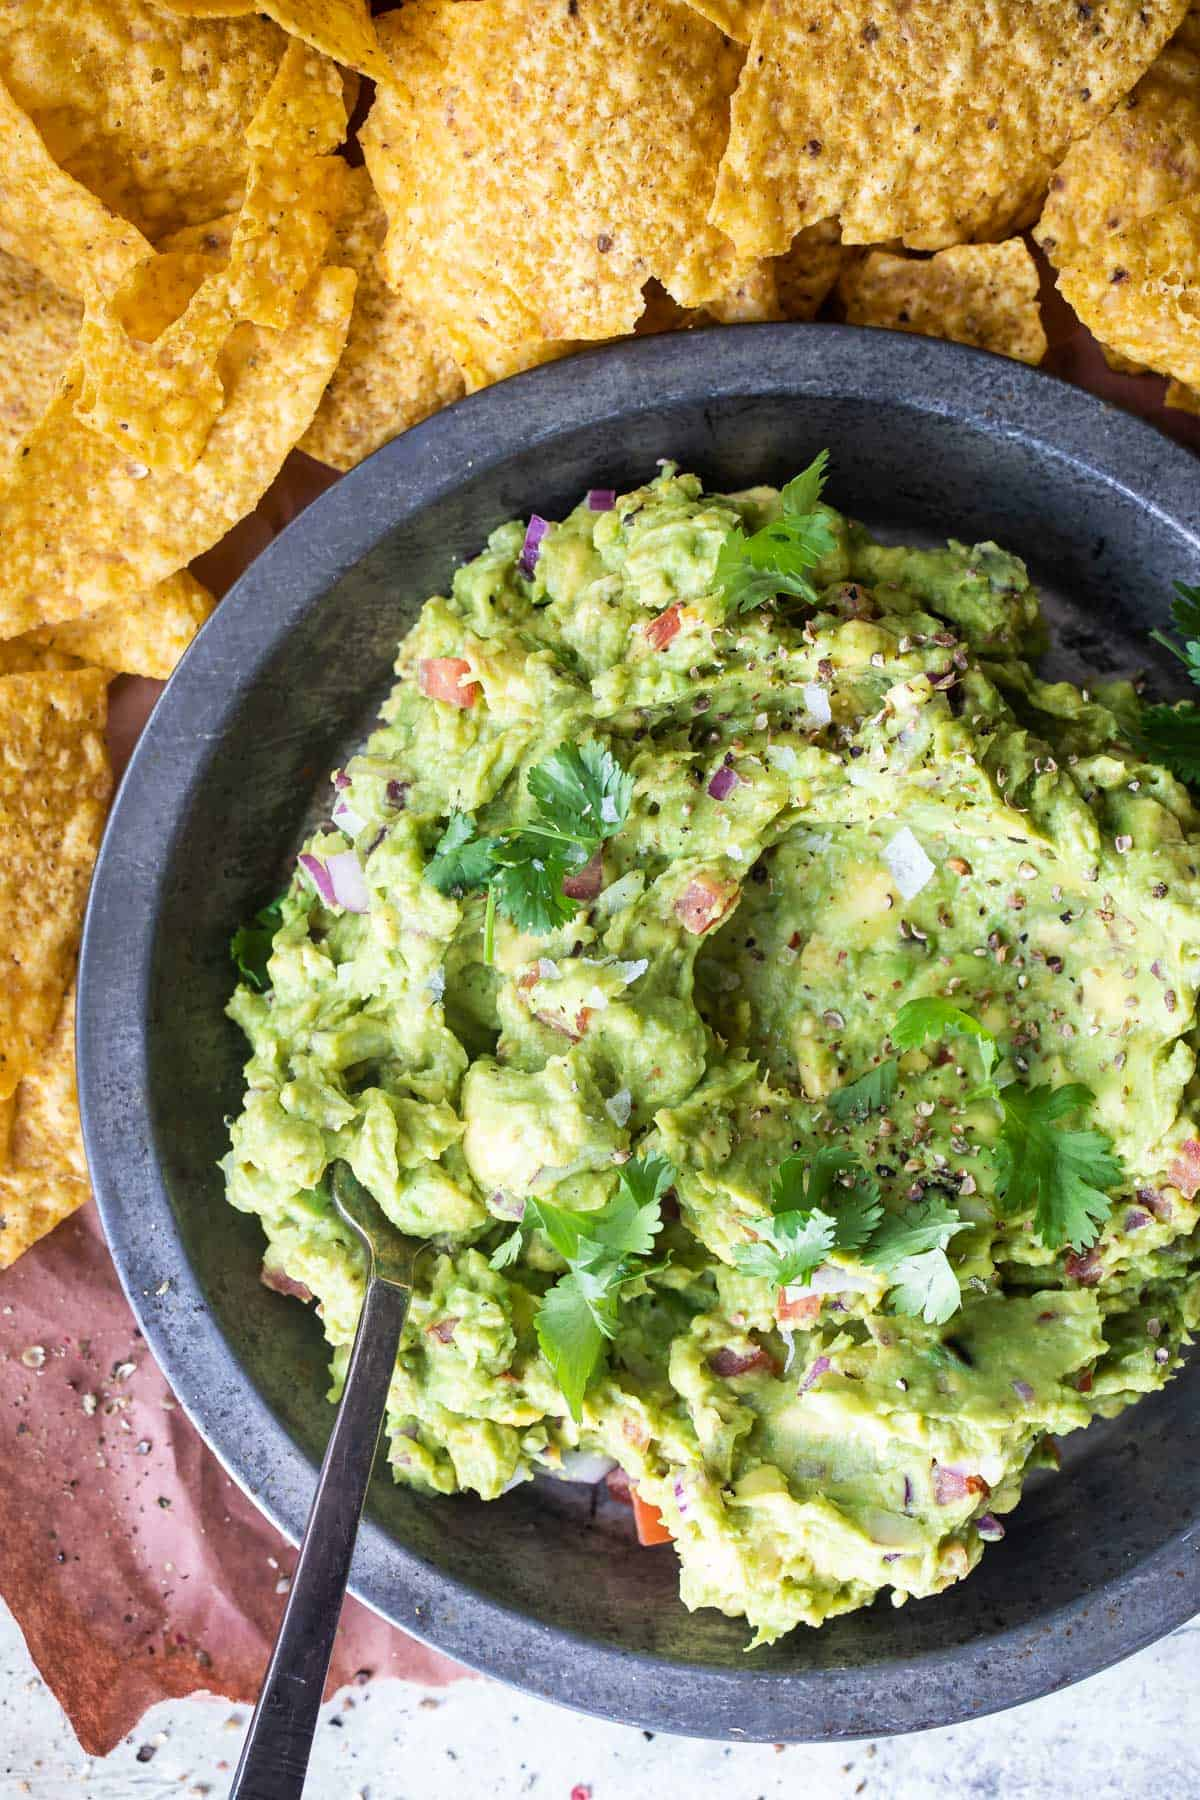 grilled avocado guacamole with cilantro on top and chips